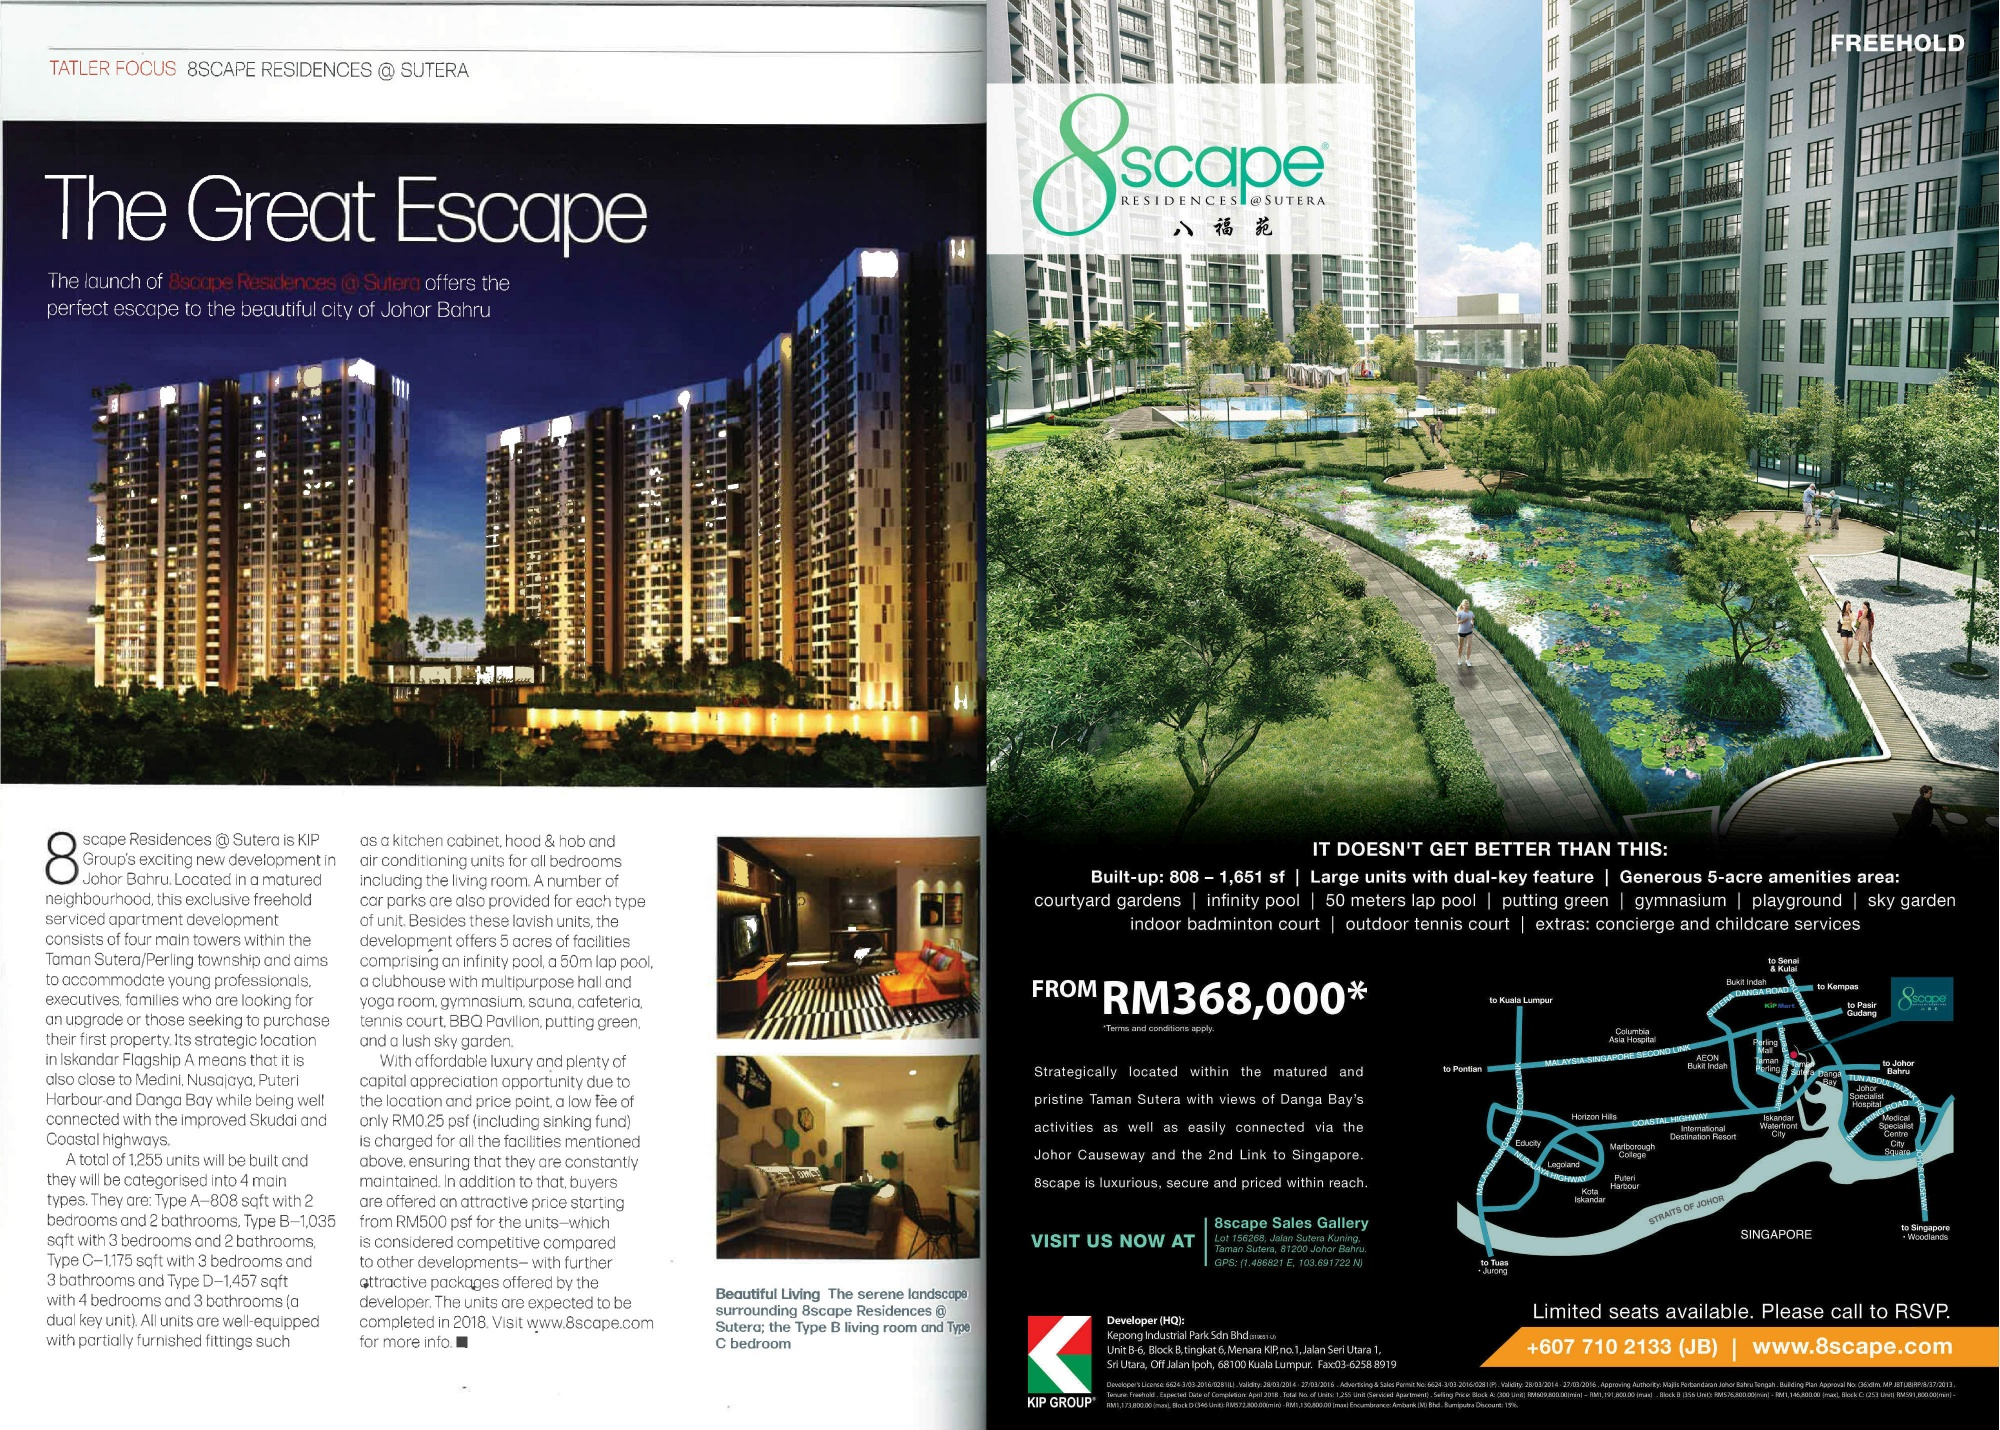 The Great Escape - Malaysia Tatler